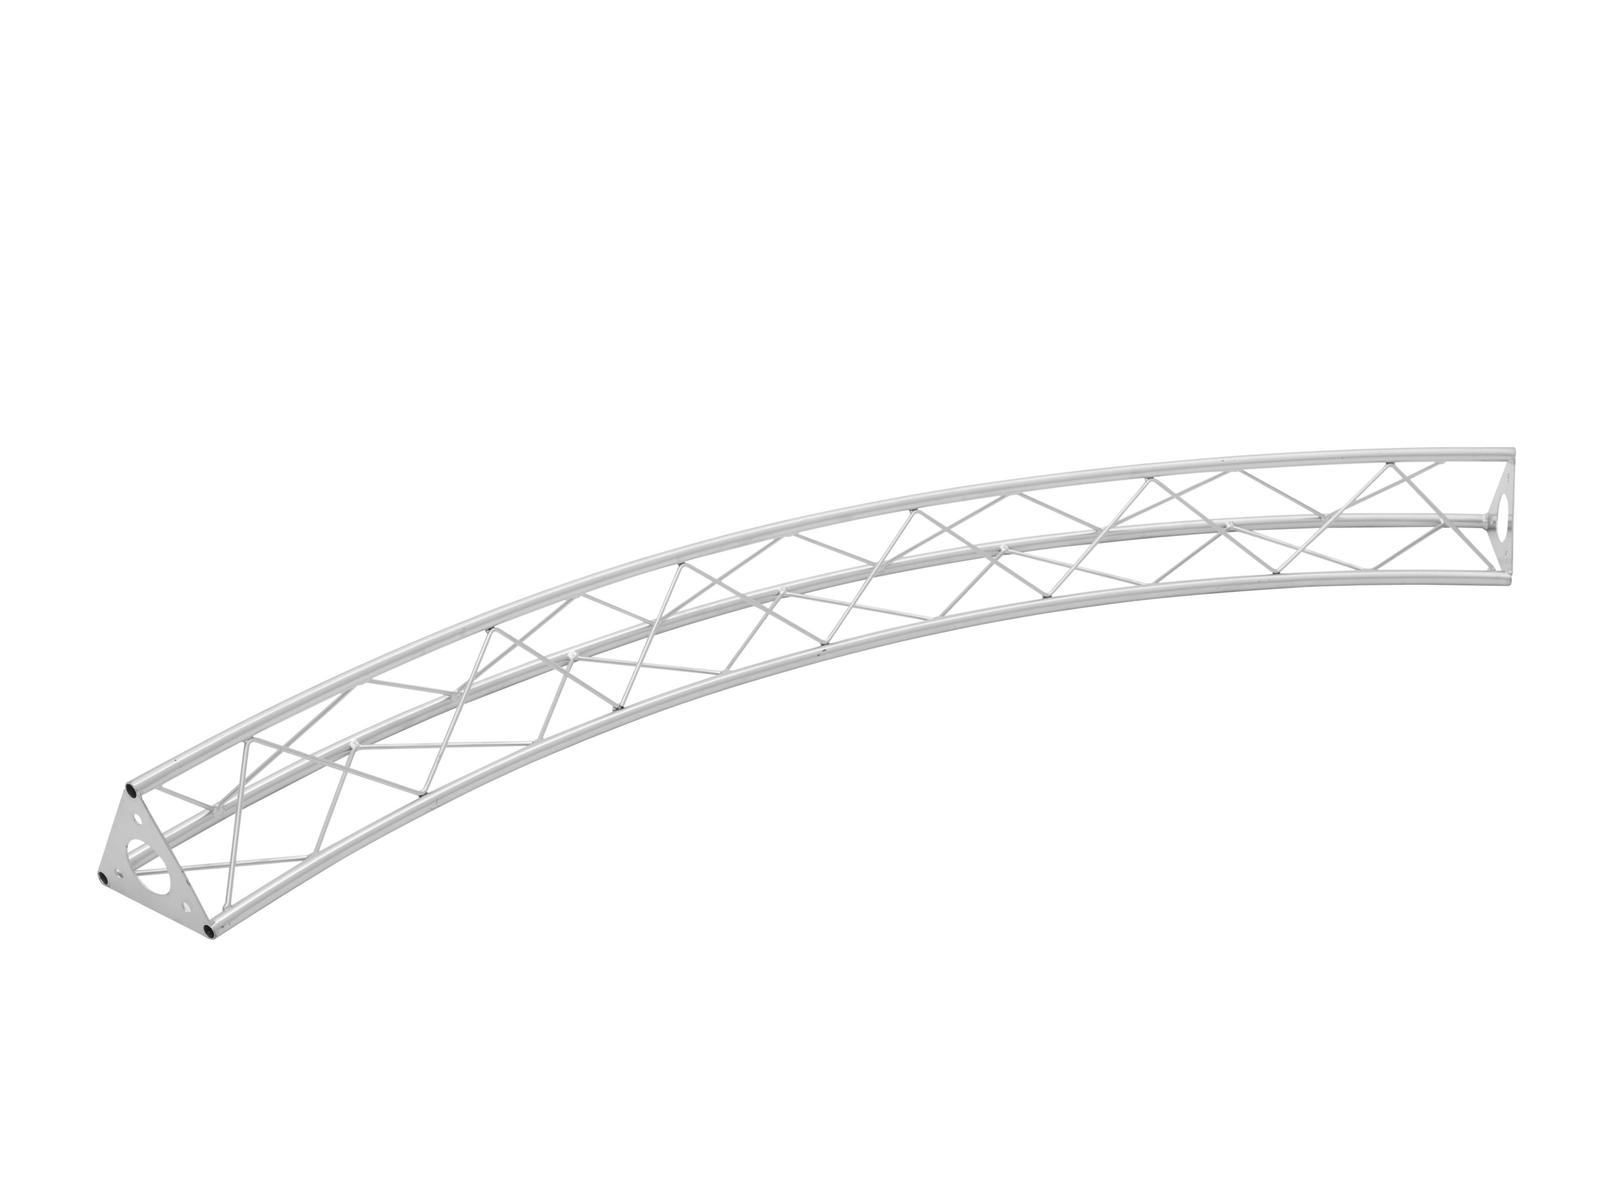 Decotruss Circle 3m section 1570mm, silver